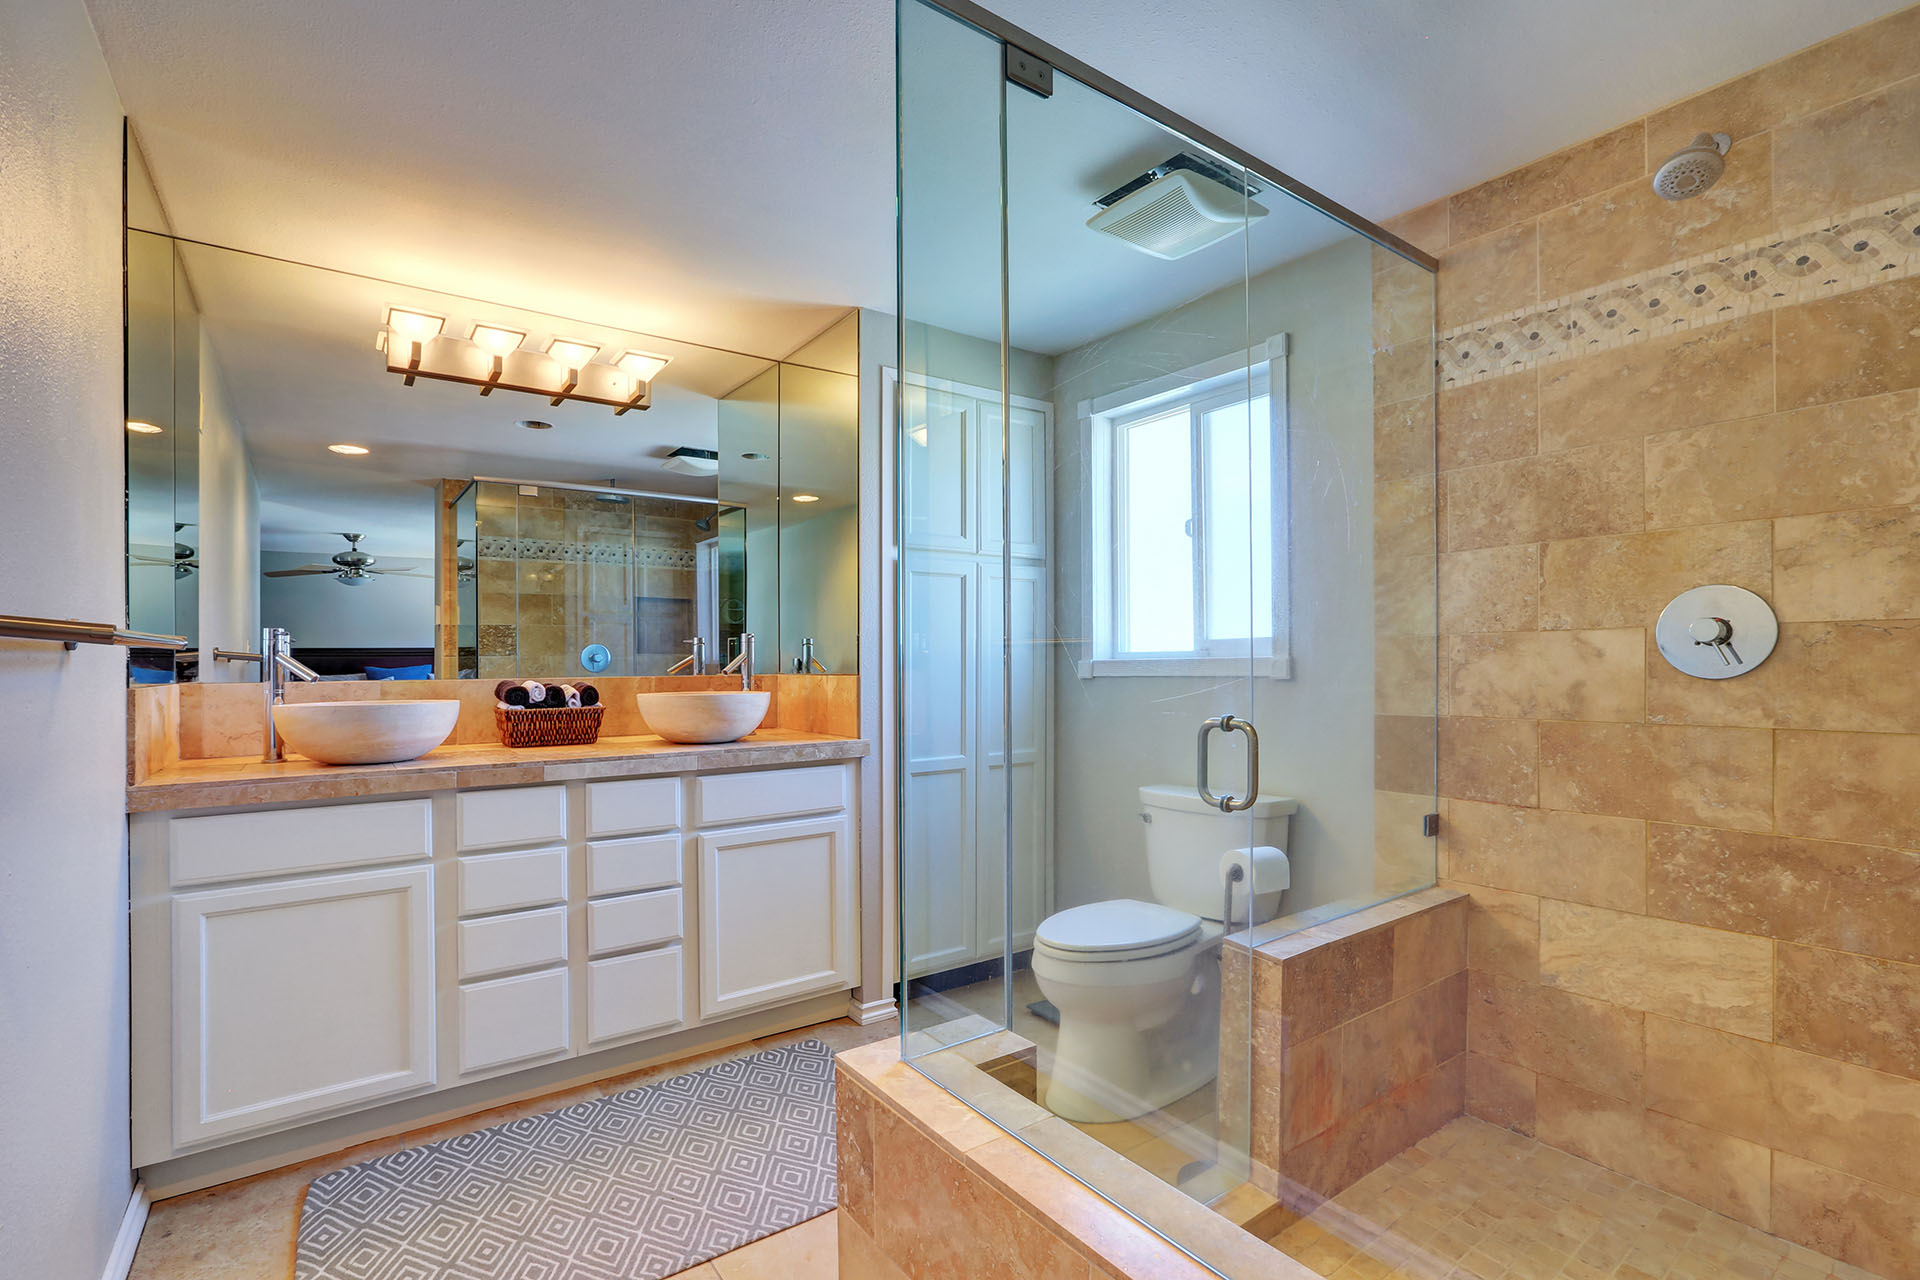 Custom Shower Doors, Mirrors, Closets, & More